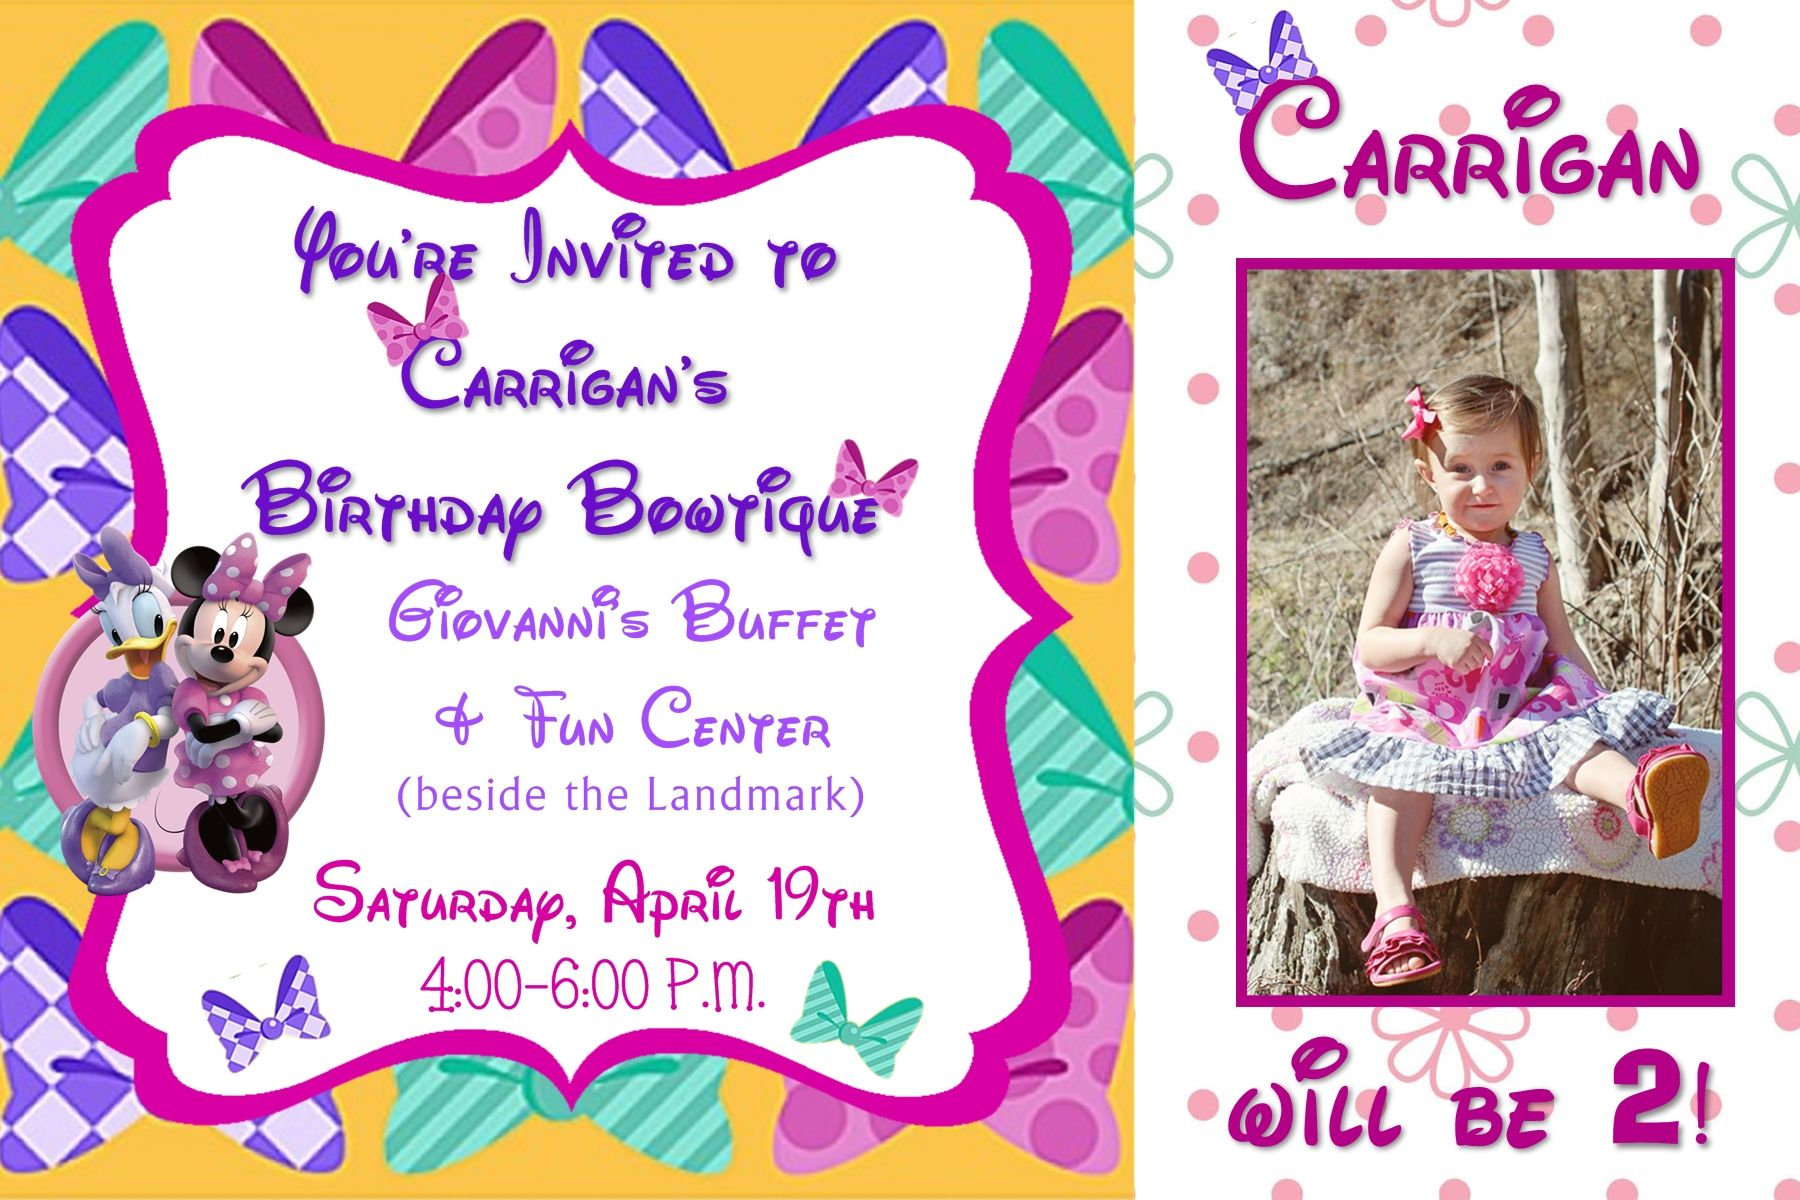 Minnies bowtique birthday invitation with photo in a 4x6 contact minnies bowtique birthday invitation with photo in a 4x6 contact me via email aswiney01yahoo stopboris